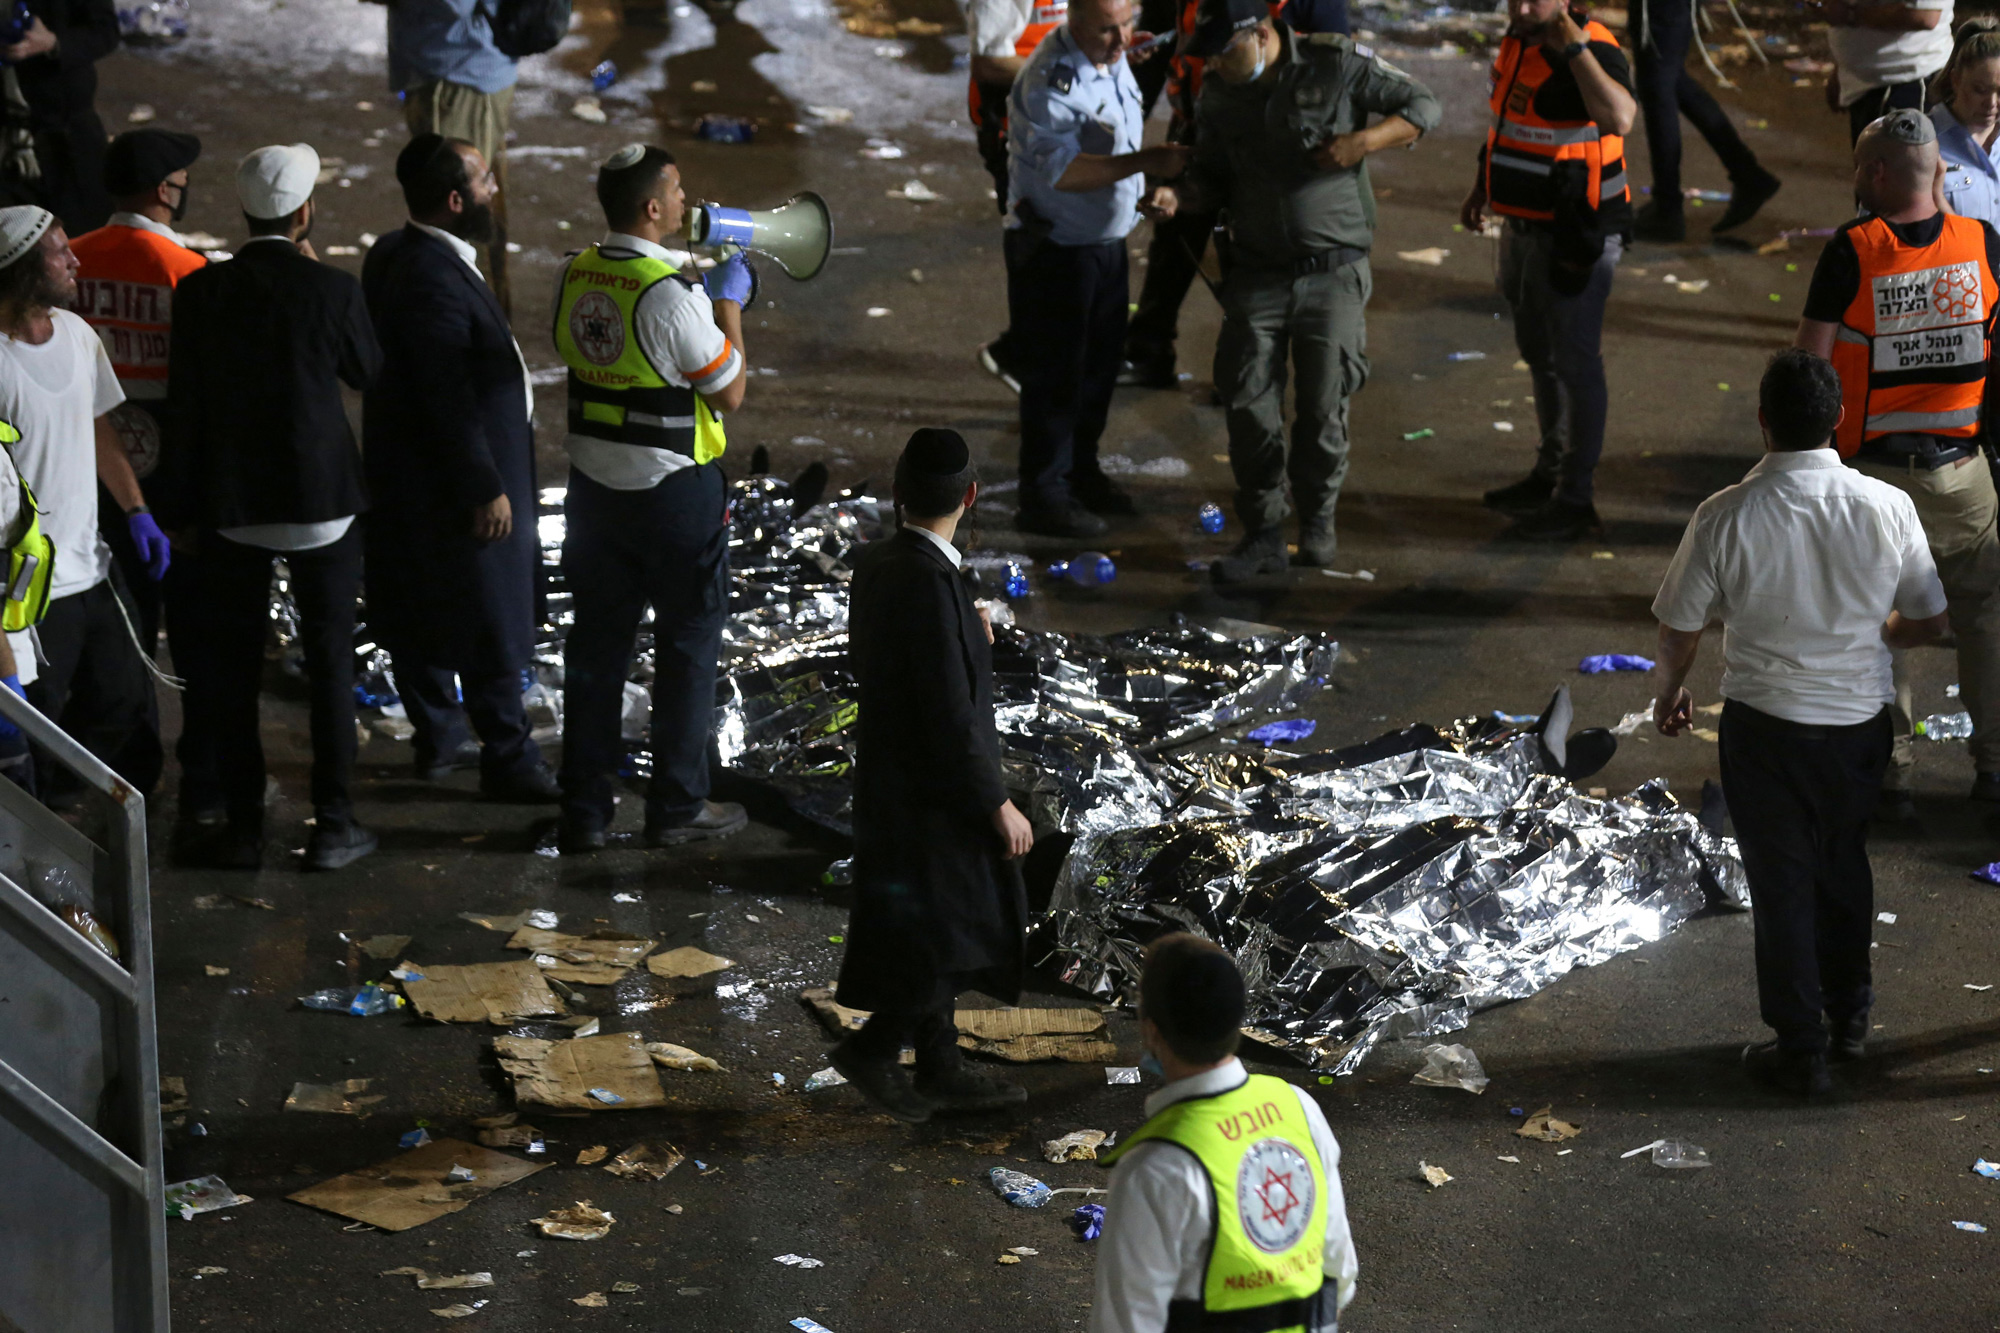 Ultra-Orthodox Jewish men stand next to covered bodies after dozens of people were killed and others injured during Lag Ba'omer celebrations at Mount Meron on April 30.